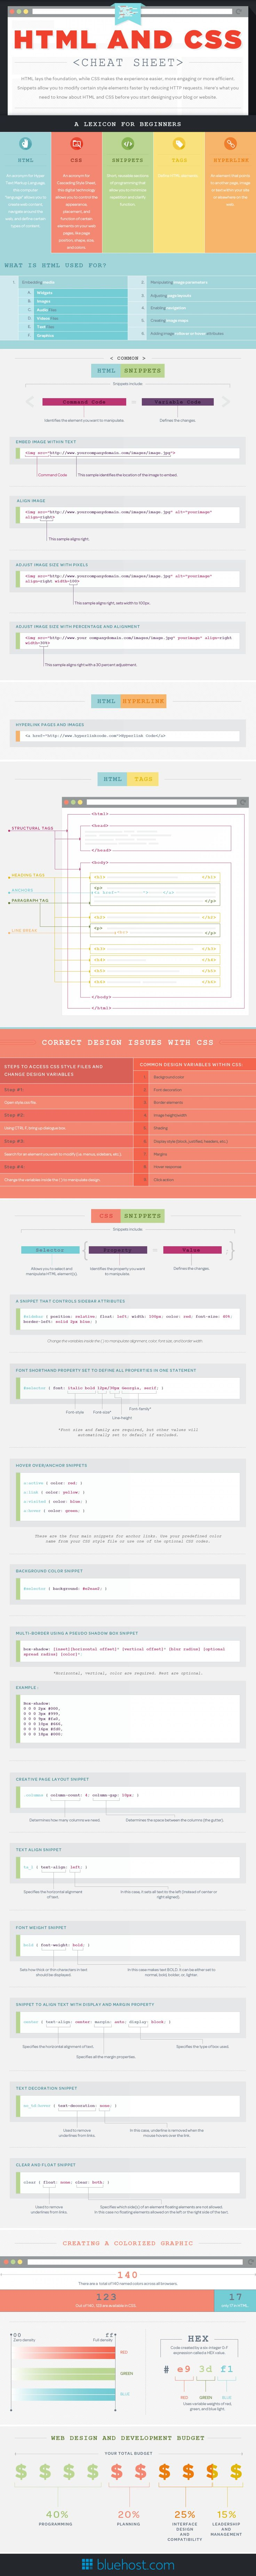 HTML and CSS Cheat Sheet #infographic